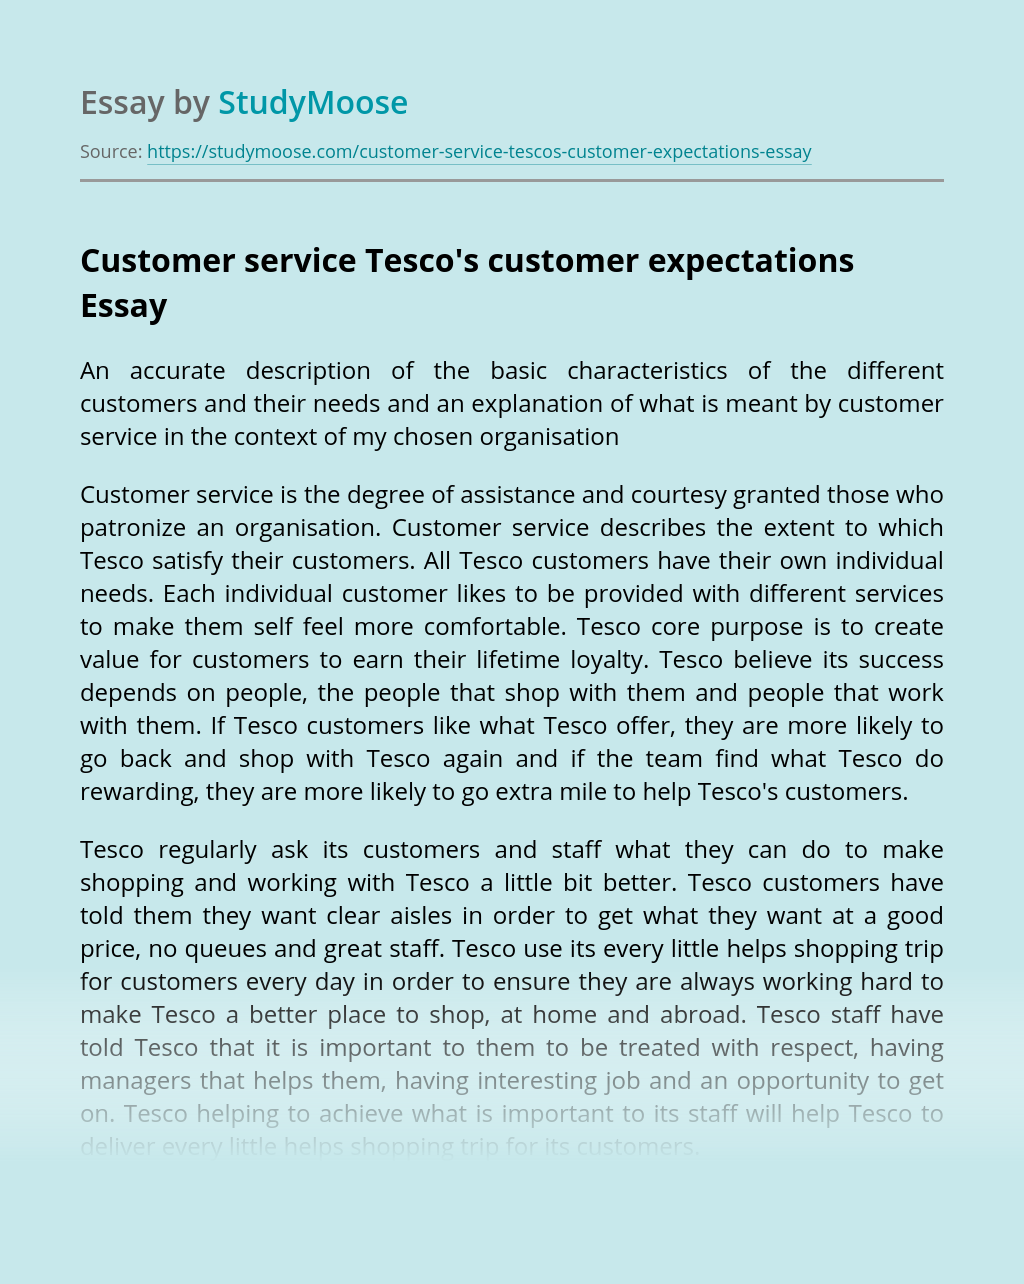 Customer service Tesco's customer expectations